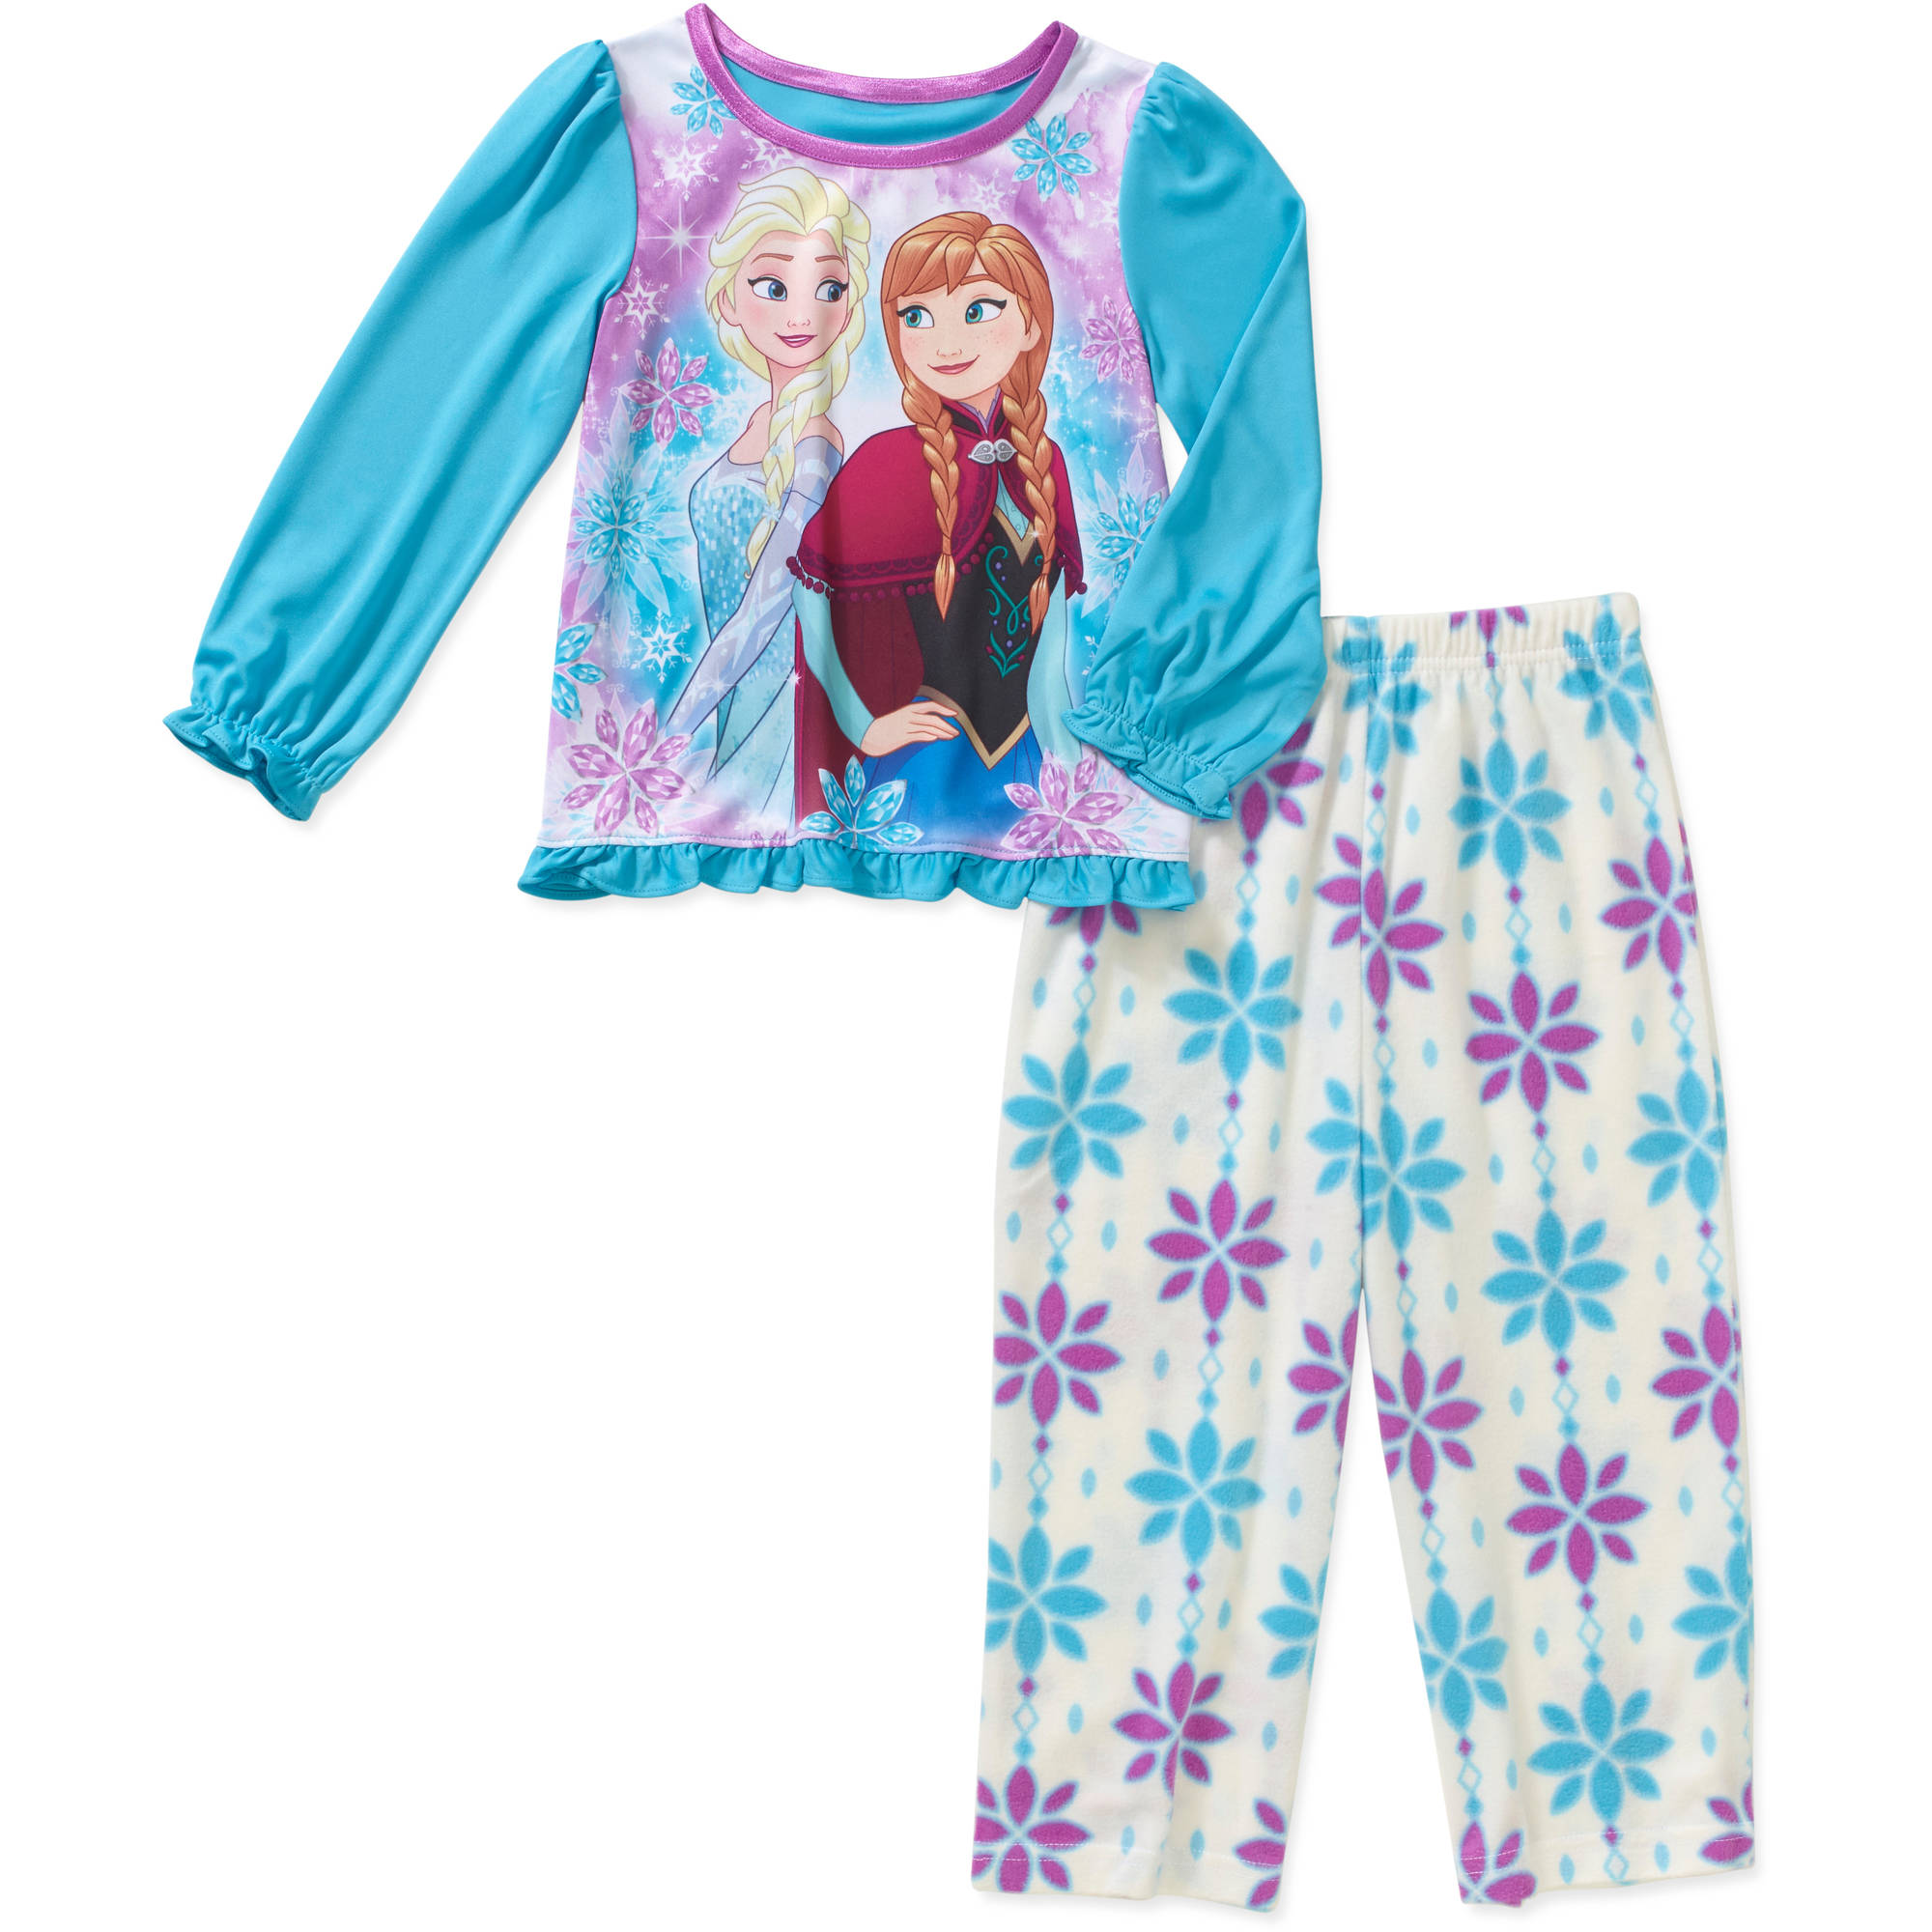 Disney Frozen Toddler Girl Long Sleeve Top with Fleece Pants Pajama 2pc Set